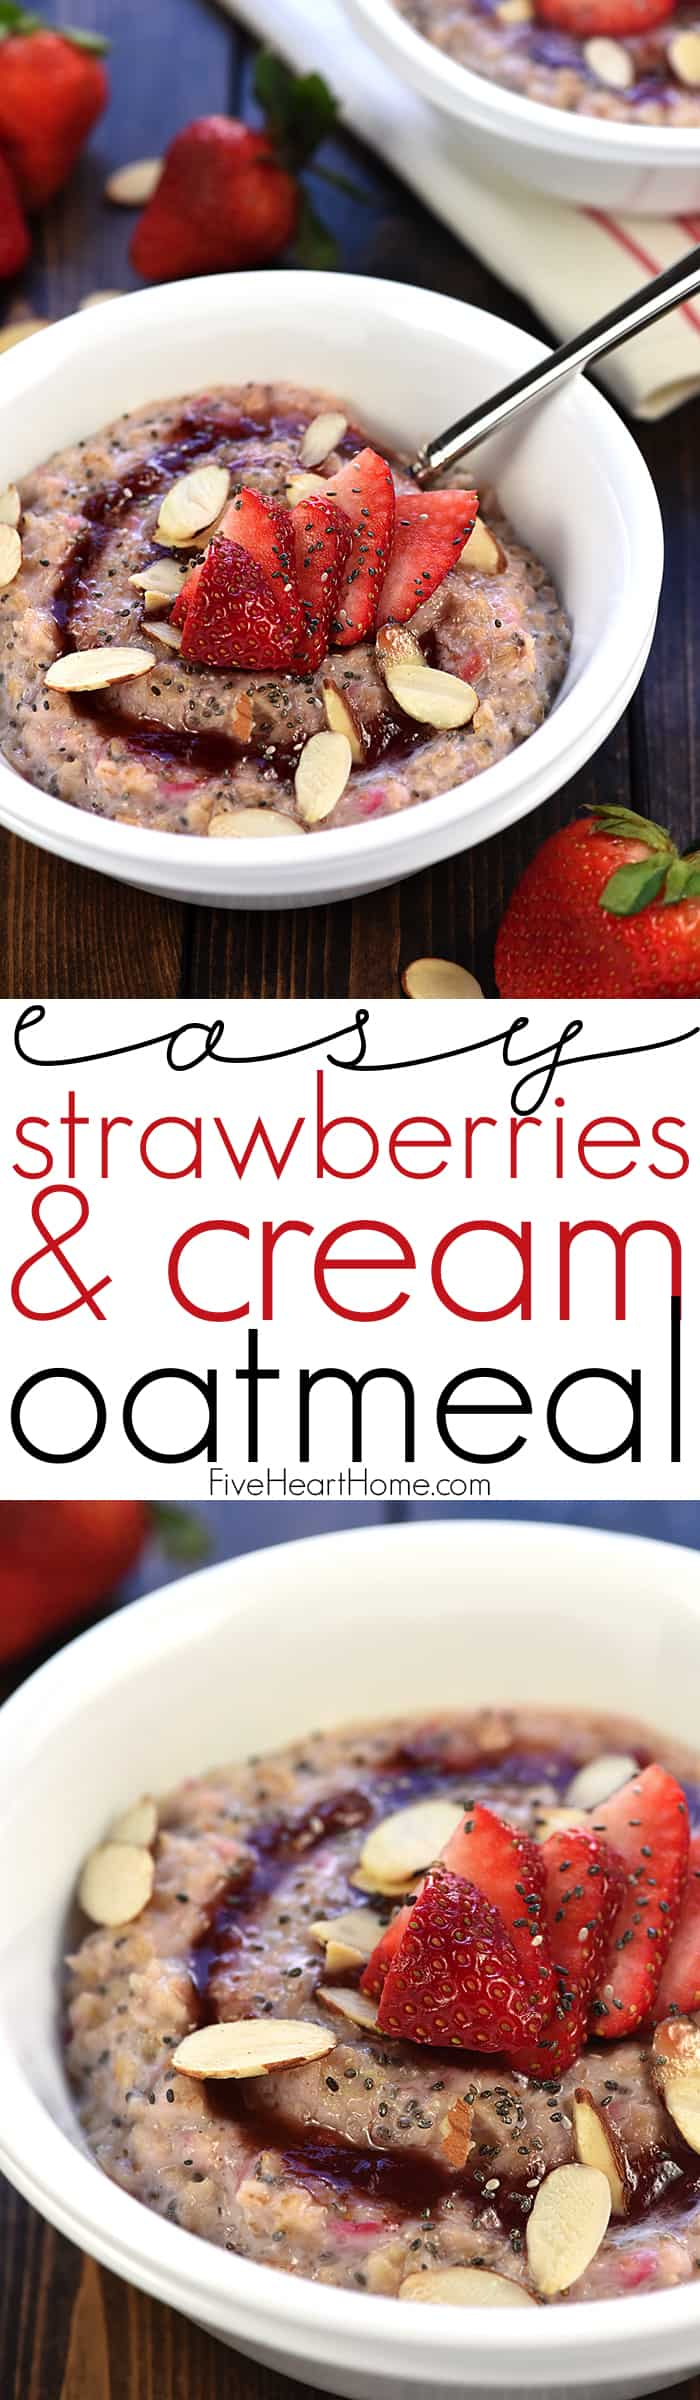 Healthy Strawberries & Cream Oatmeal Collage with Text Overlay